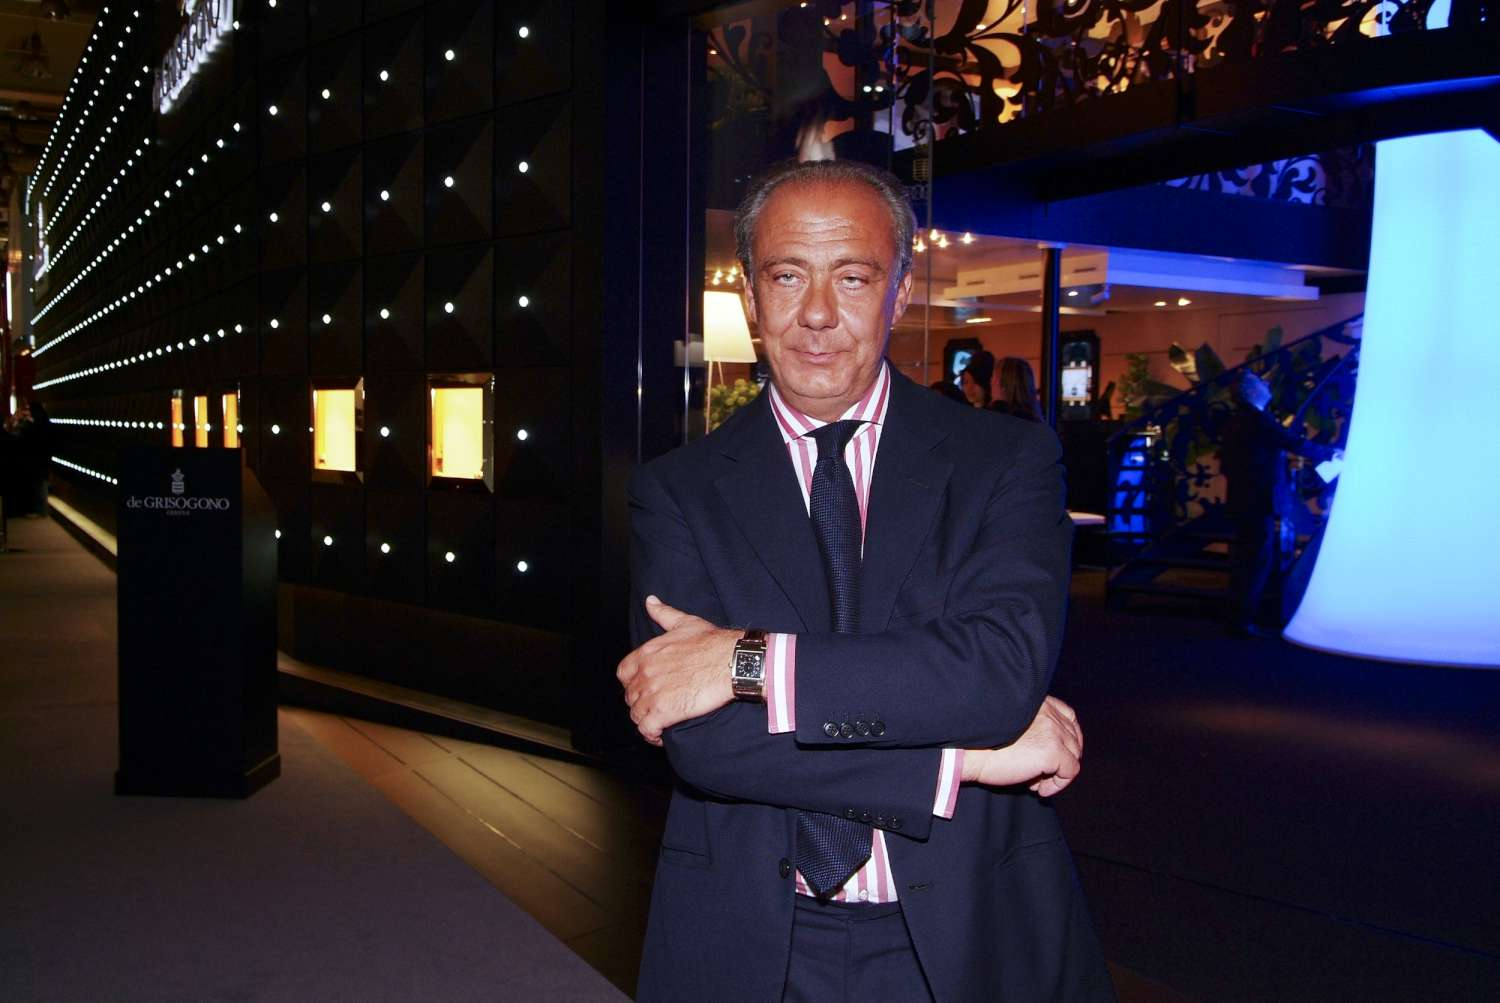 Fawaz Gruosi at Baselworld, photo courtesy of Johann Sauty/de Grisogono